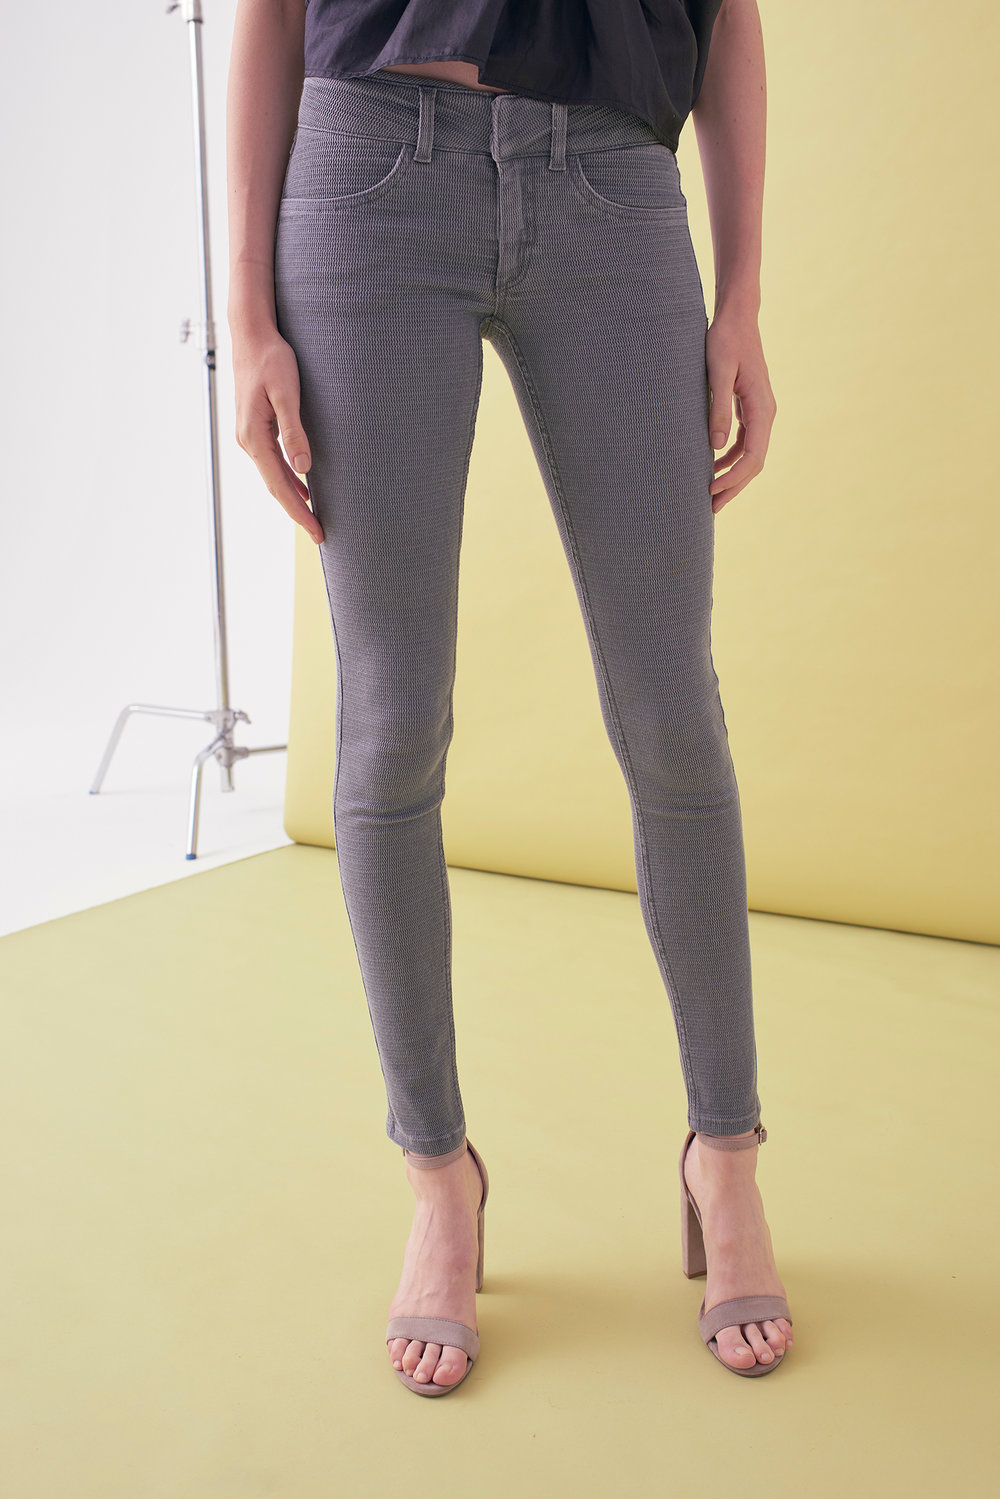 Sarah_Swann_SS17_09_Textured_Stretch_Cotton_Skinny_Trouser_Pewter_F.jpg